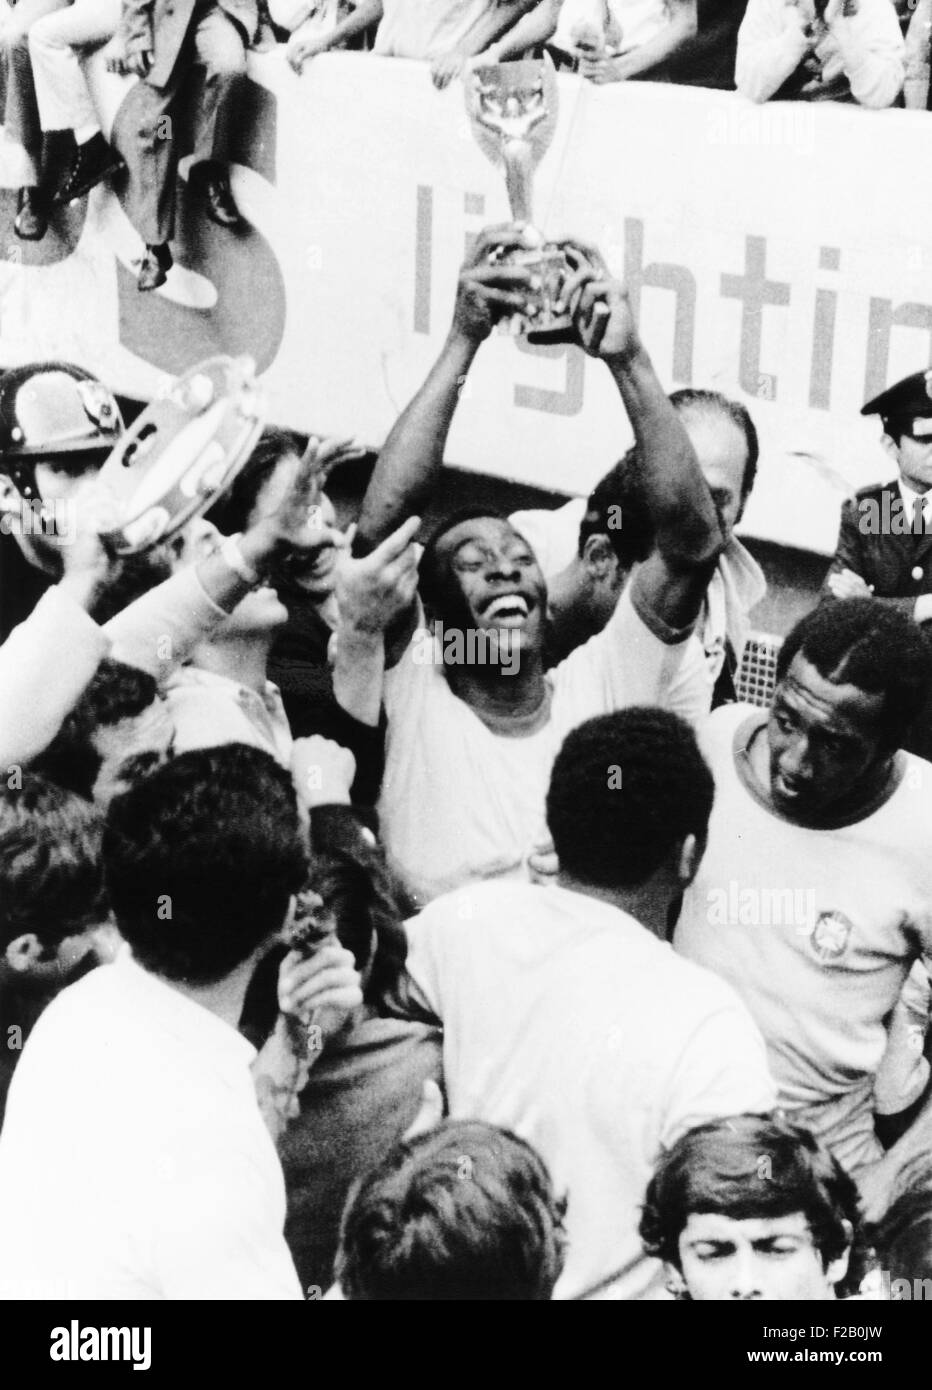 Pele in triumph in Mexico City, June 21, 1970. He holds up the Jules Rimet Cup, won by Brazil for defeating Italy - Stock Image